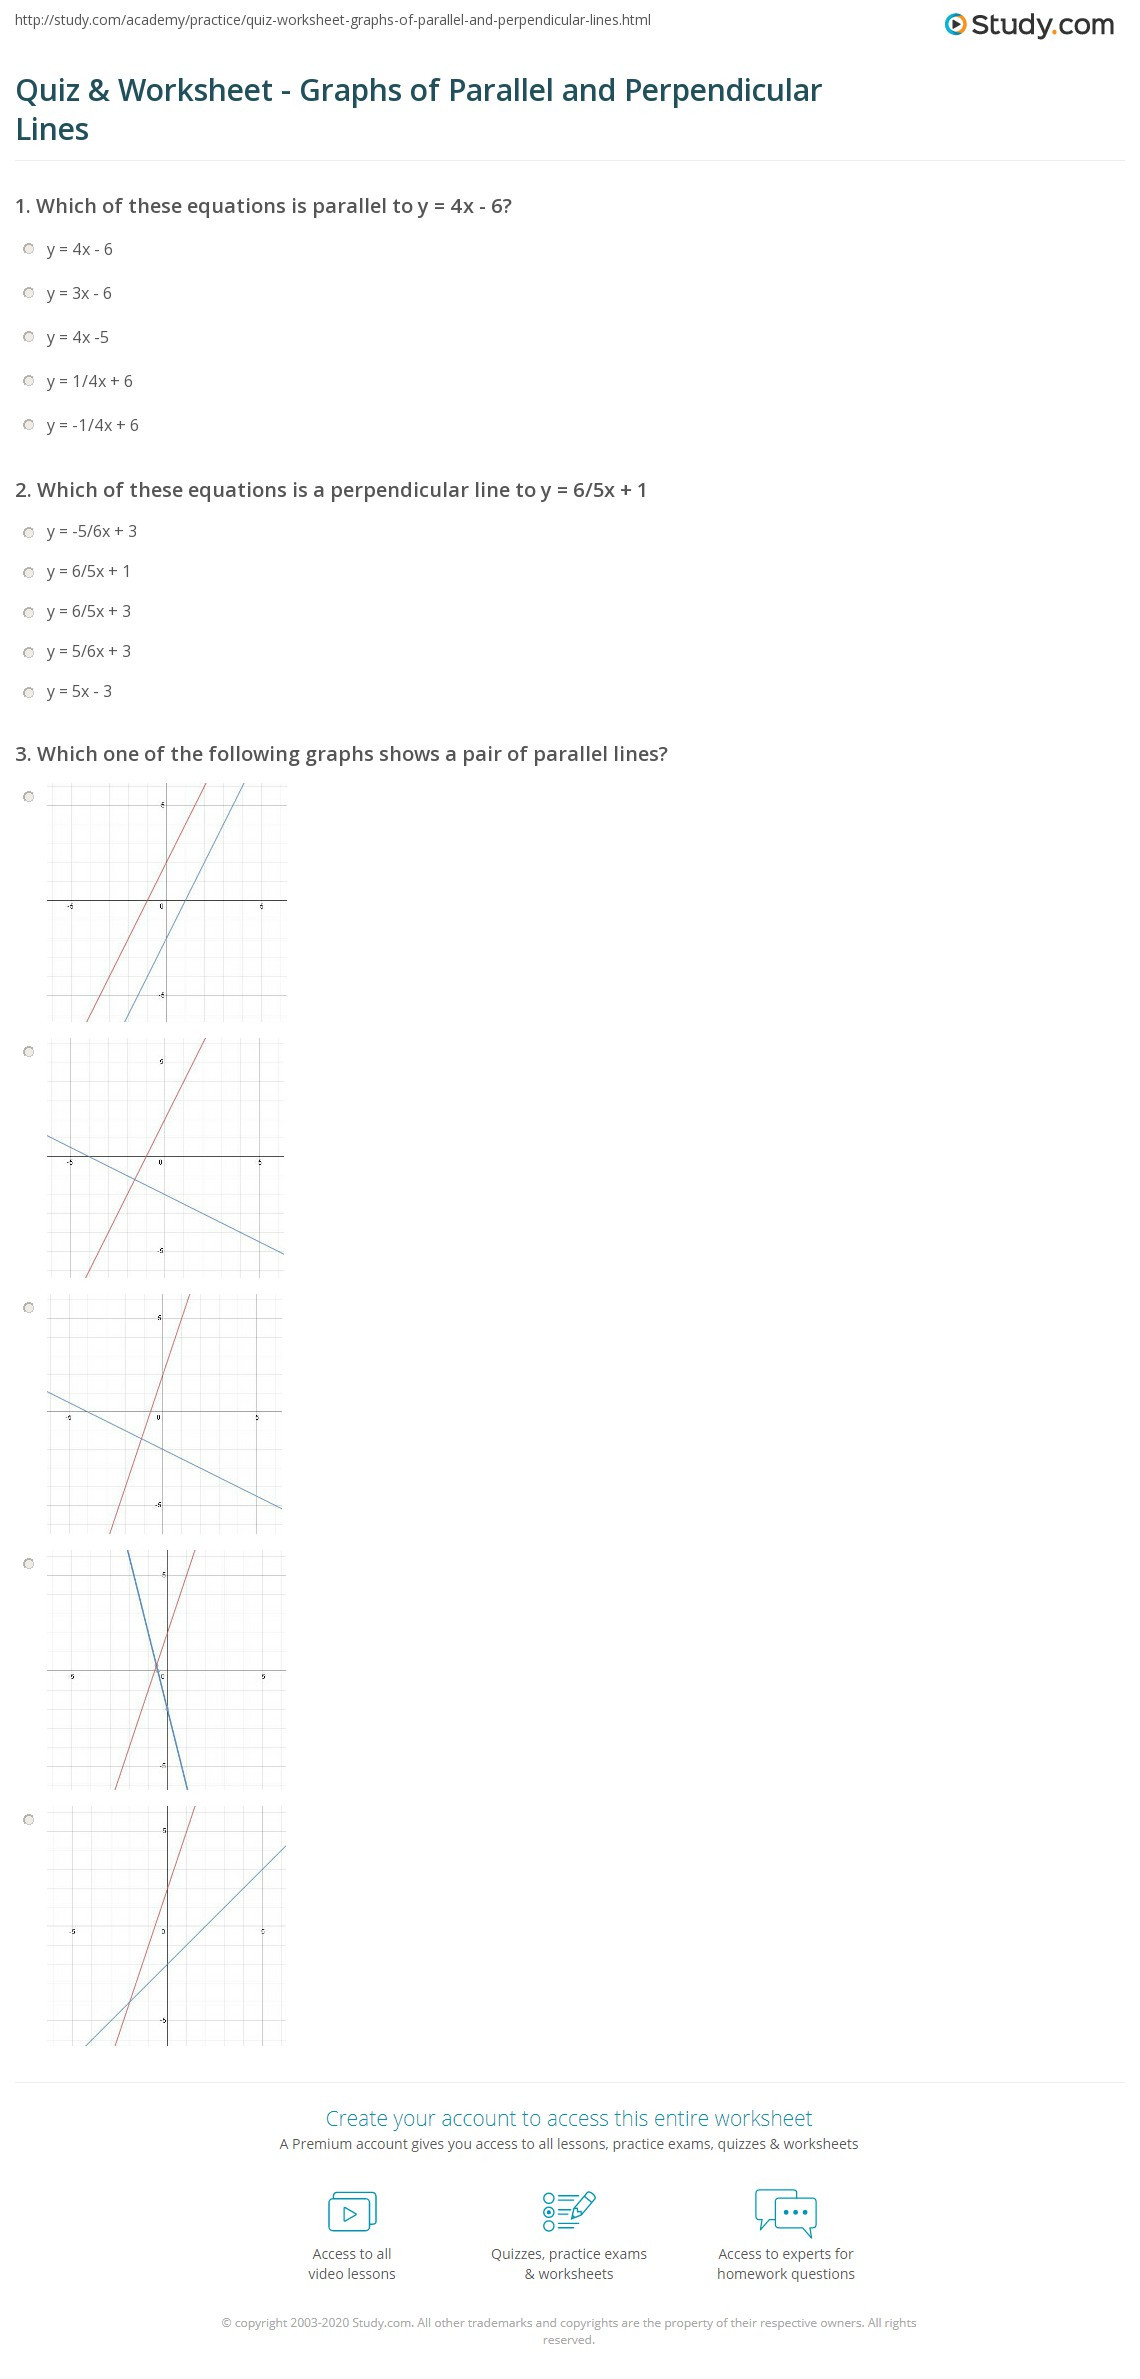 Writing Equations From Graphs Worksheet Quiz & Worksheet Graphs Of Parallel and Perpendicular